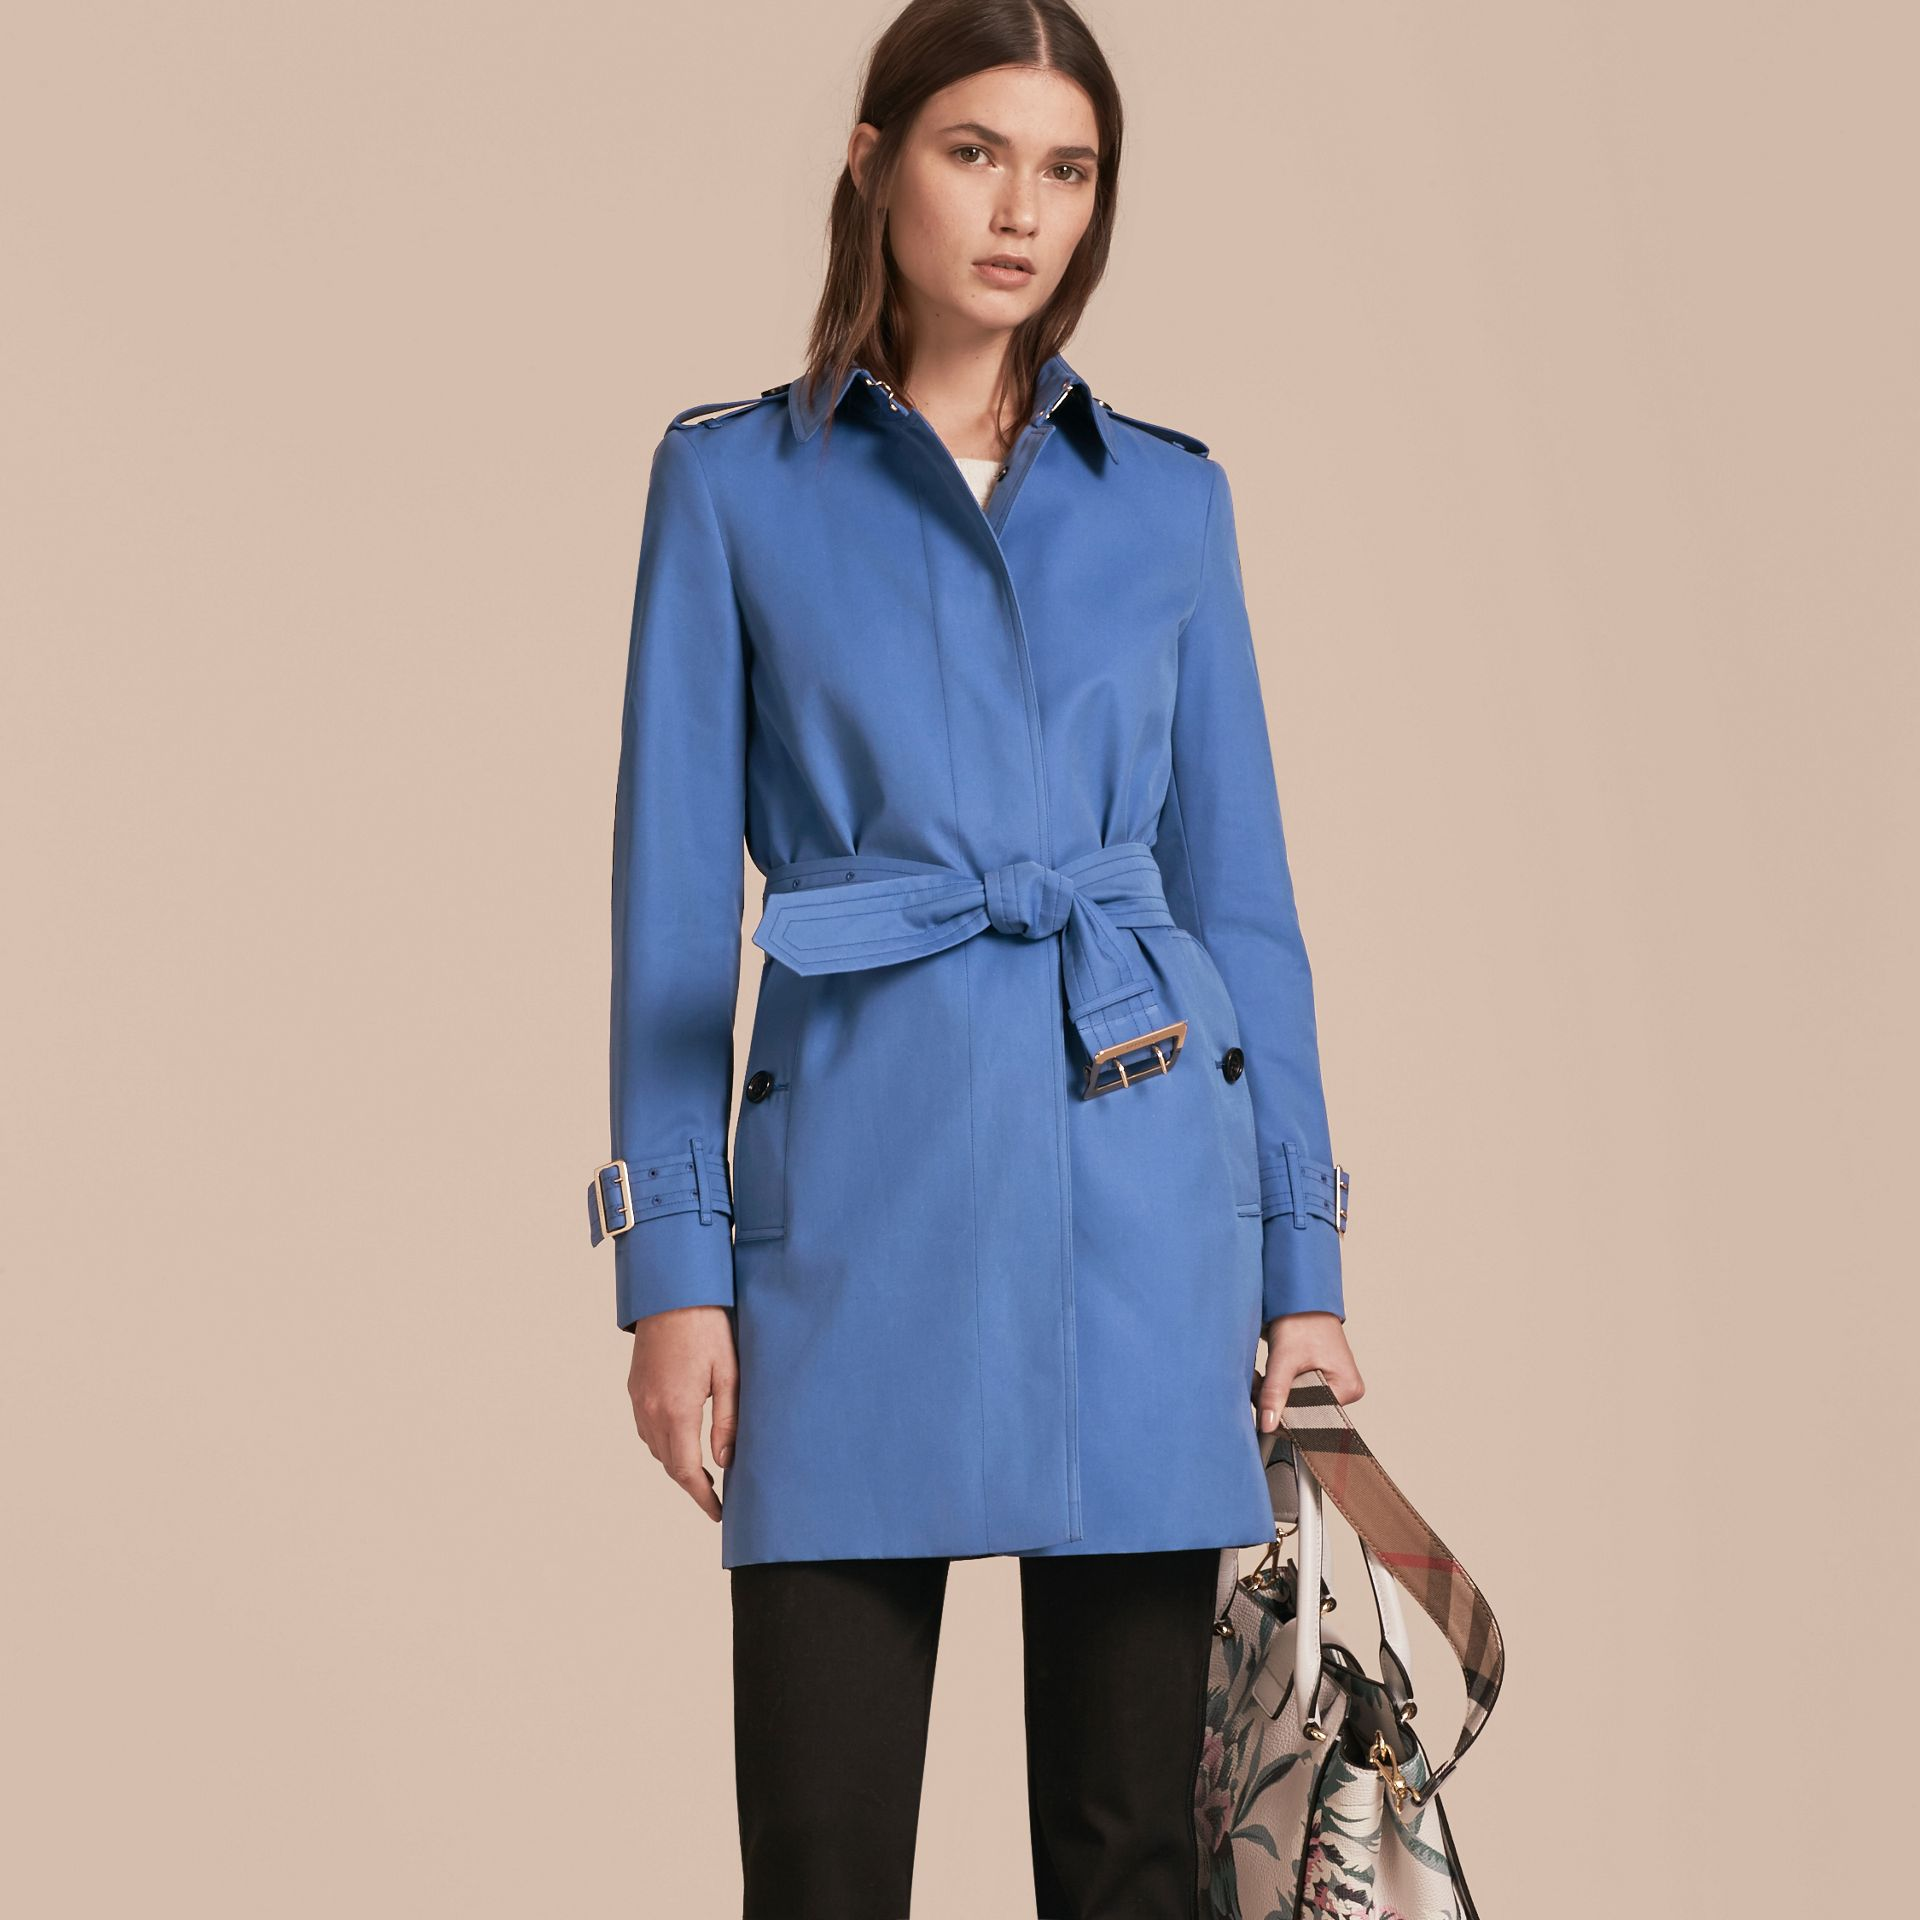 Bright steel blue Single-breasted Trench Coat with Metal Buckle Detail Bright Steel Blue - gallery image 7